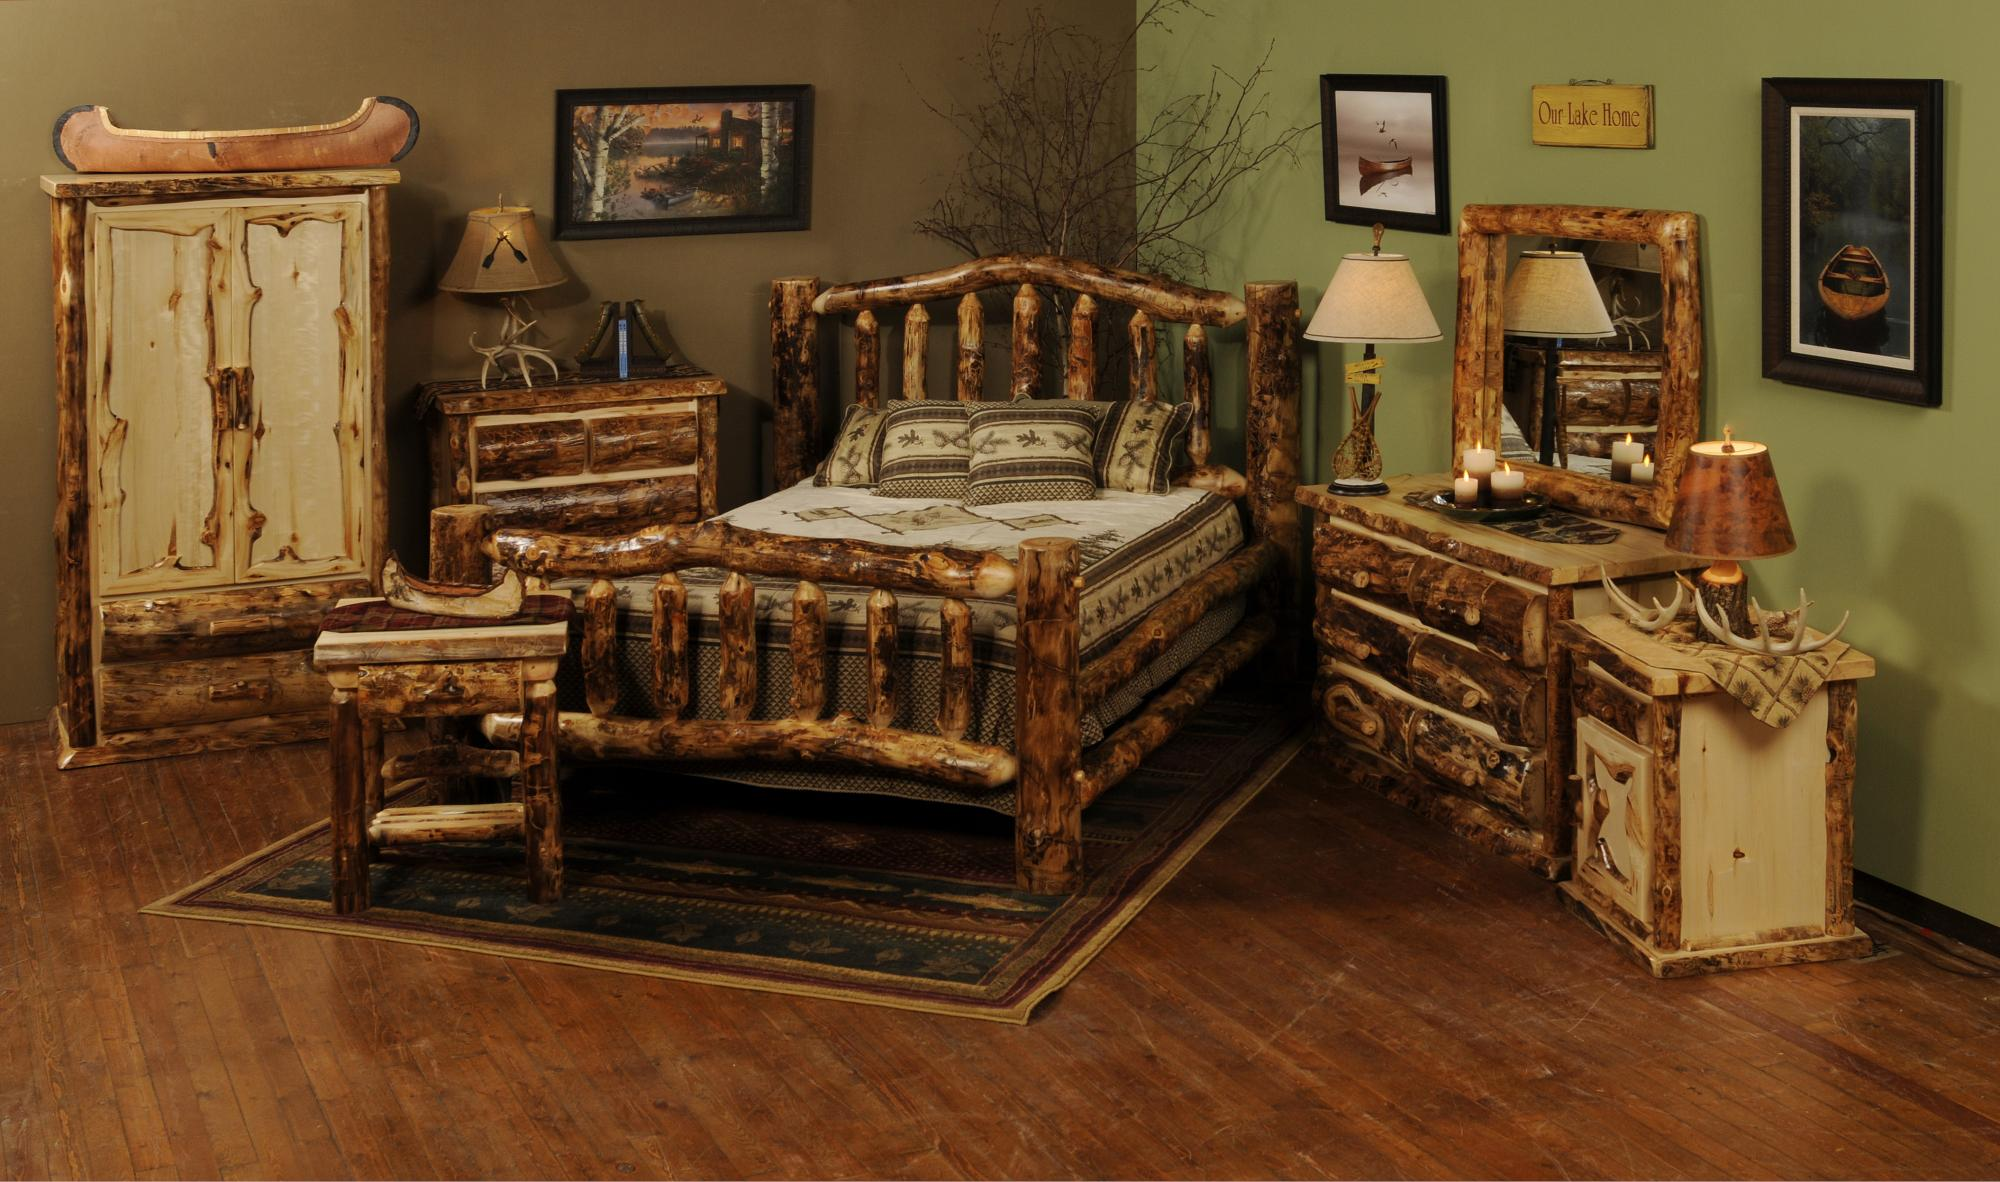 Aspen Extreme Bed Amish Furniture Store Mankato Mn